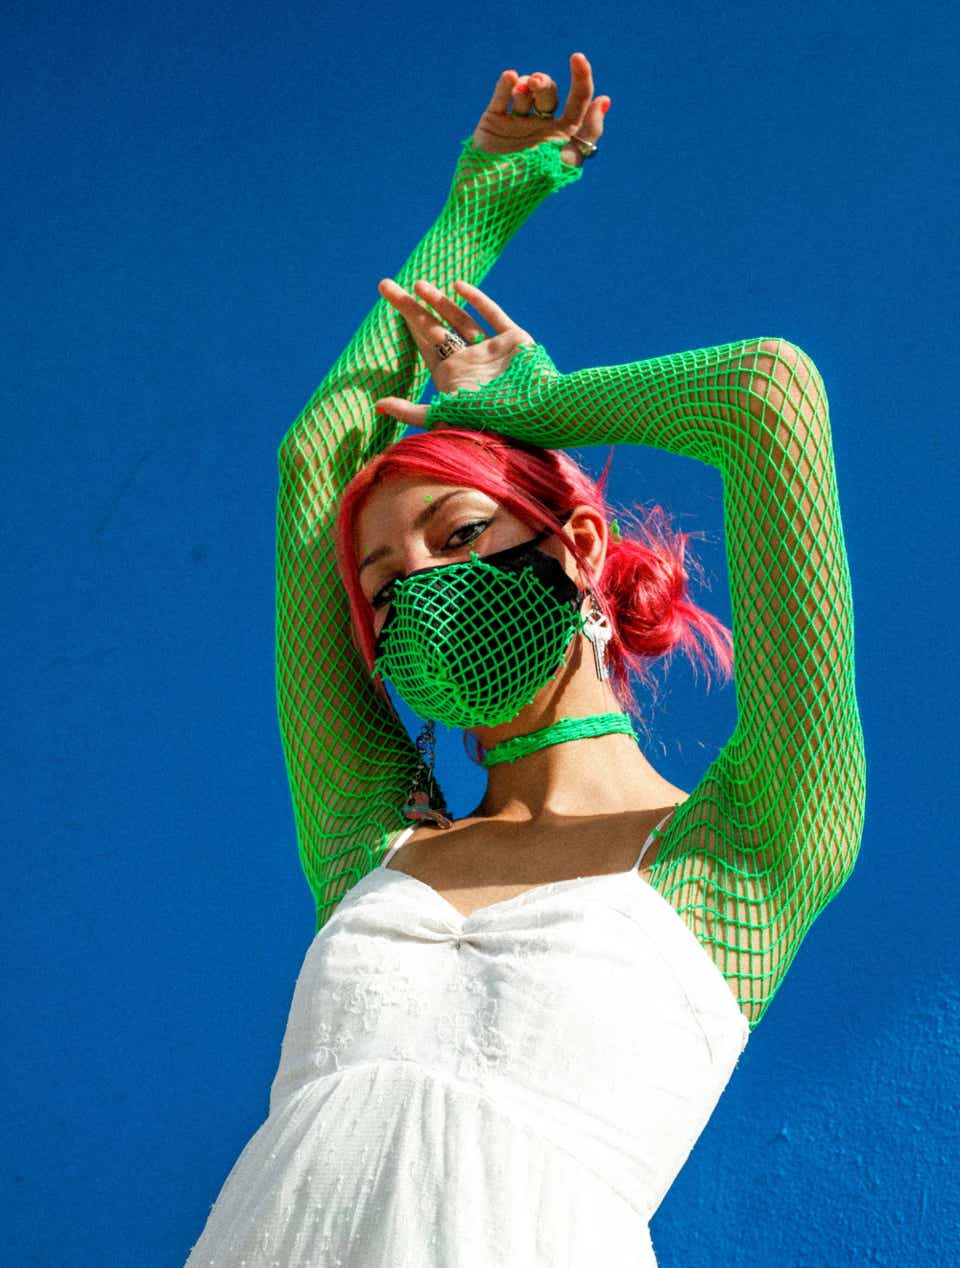 Paris has bright pink hair and is wearing neon green fishnet sleeves with a matching face mask. Layered on top of her fishnet sleeves is a little white dress.